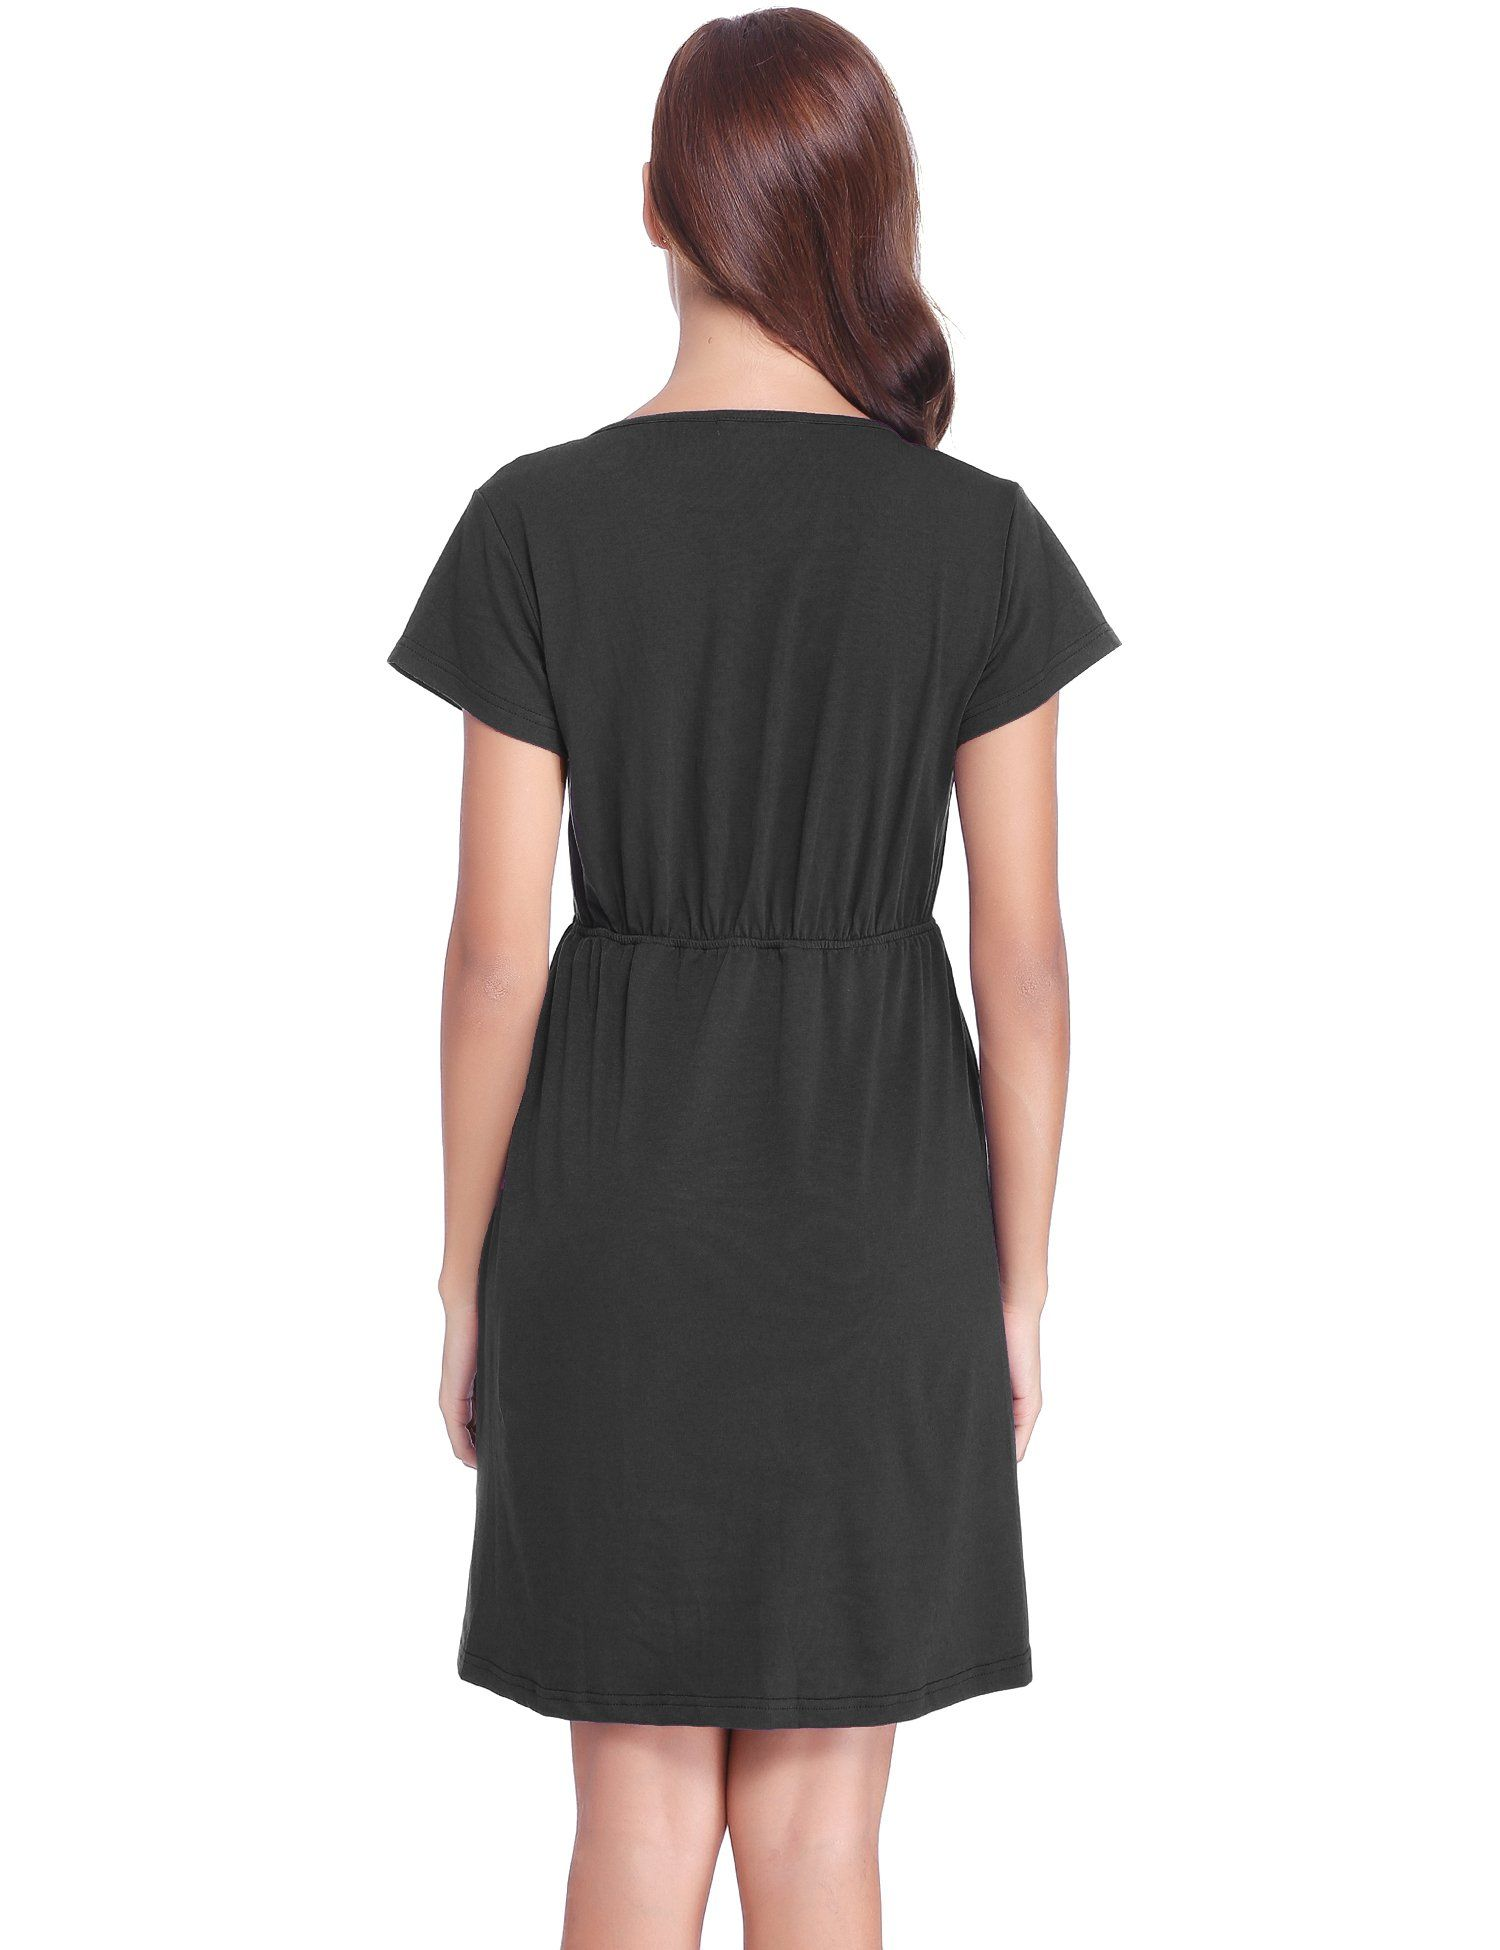 dc187caeac6db Maternity Outfits - sensible maternity dresses   Abollria Womens Short  Sleeve Ruched Maternity Nursing Breastfeeding Dress -- Be sure to have a  look at this ...